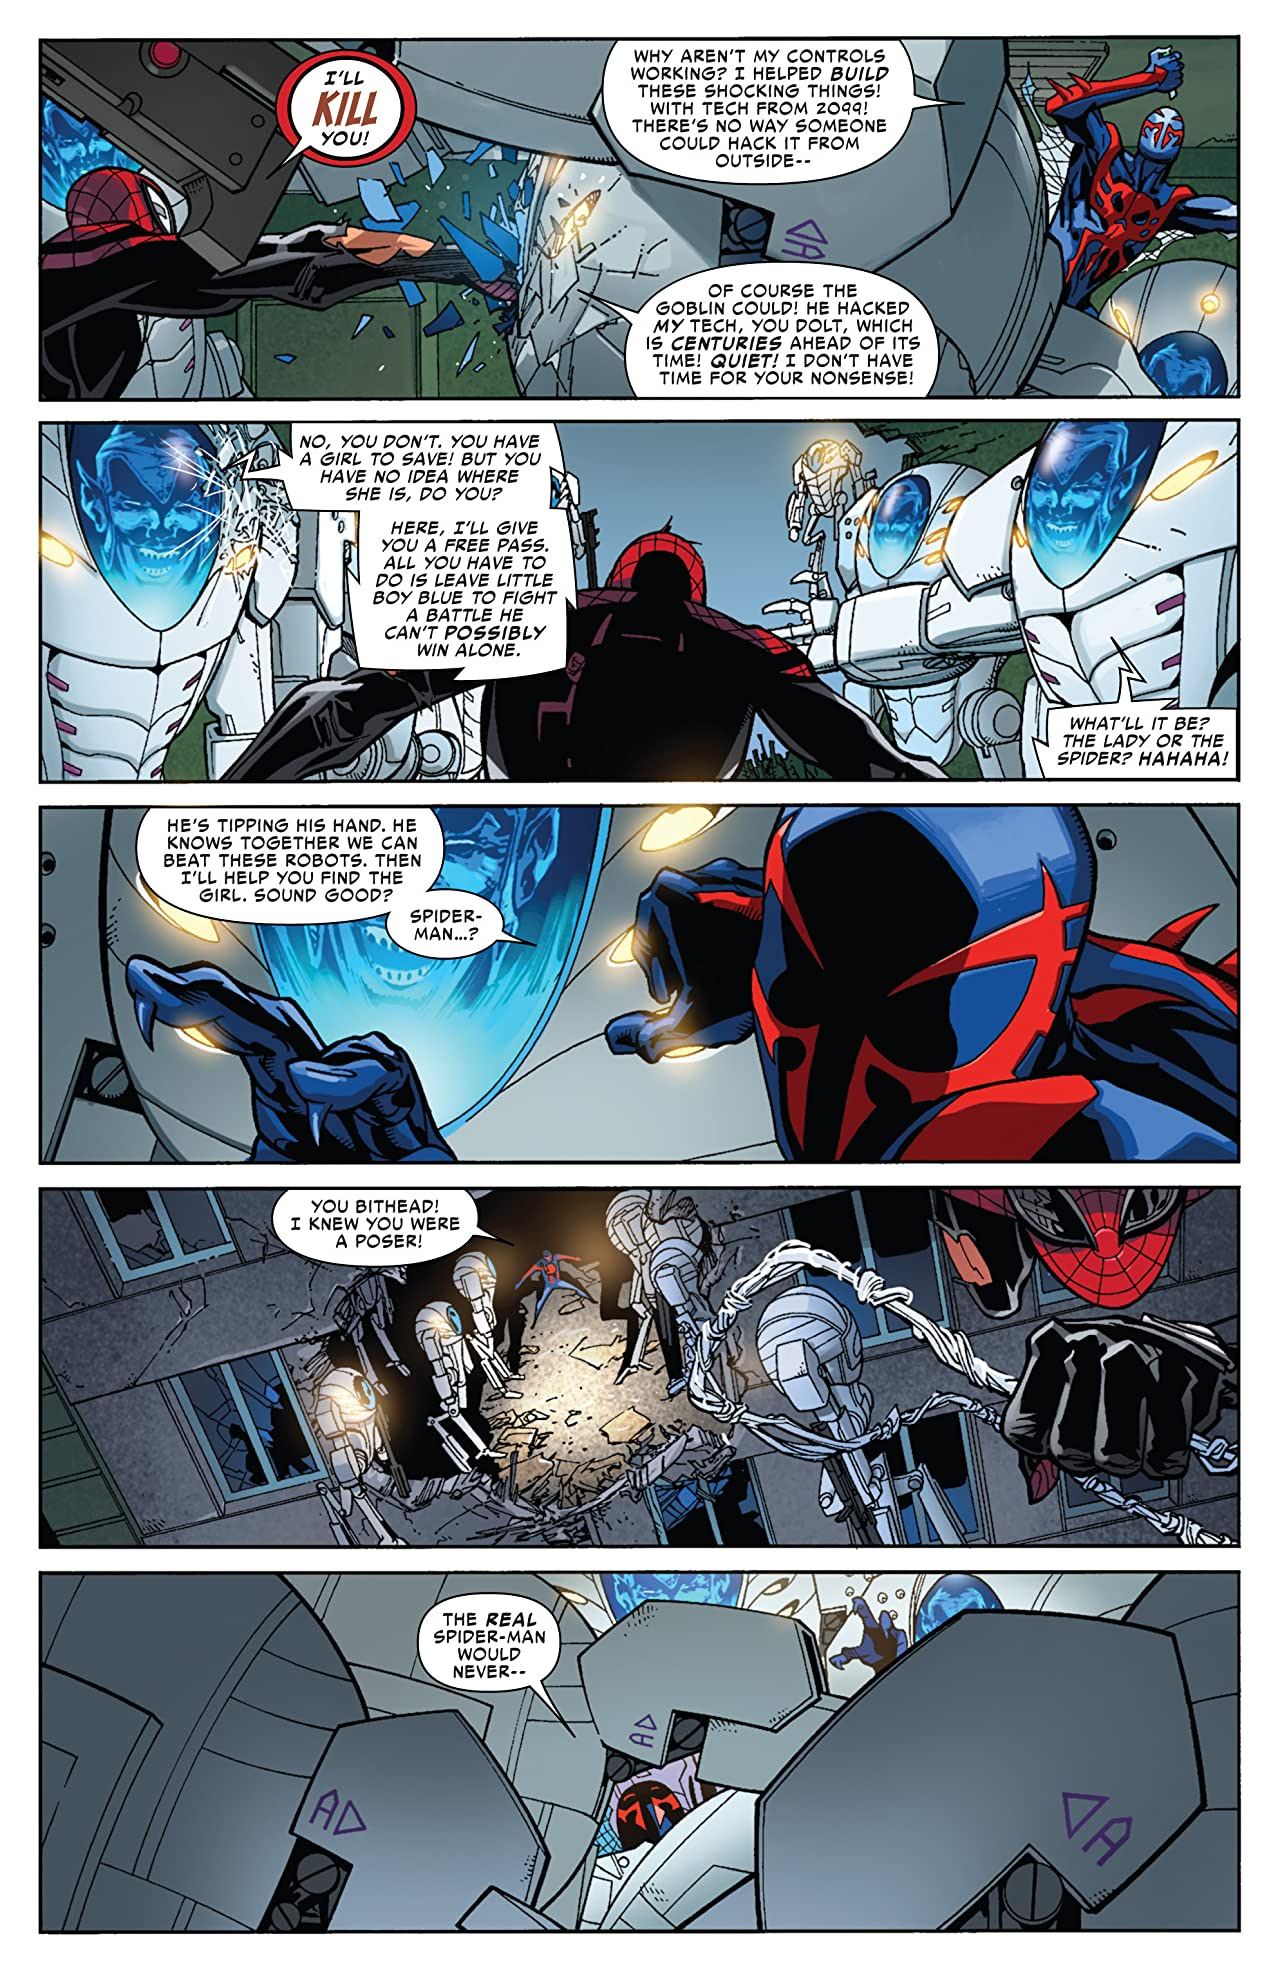 Superior Spider-Man #30